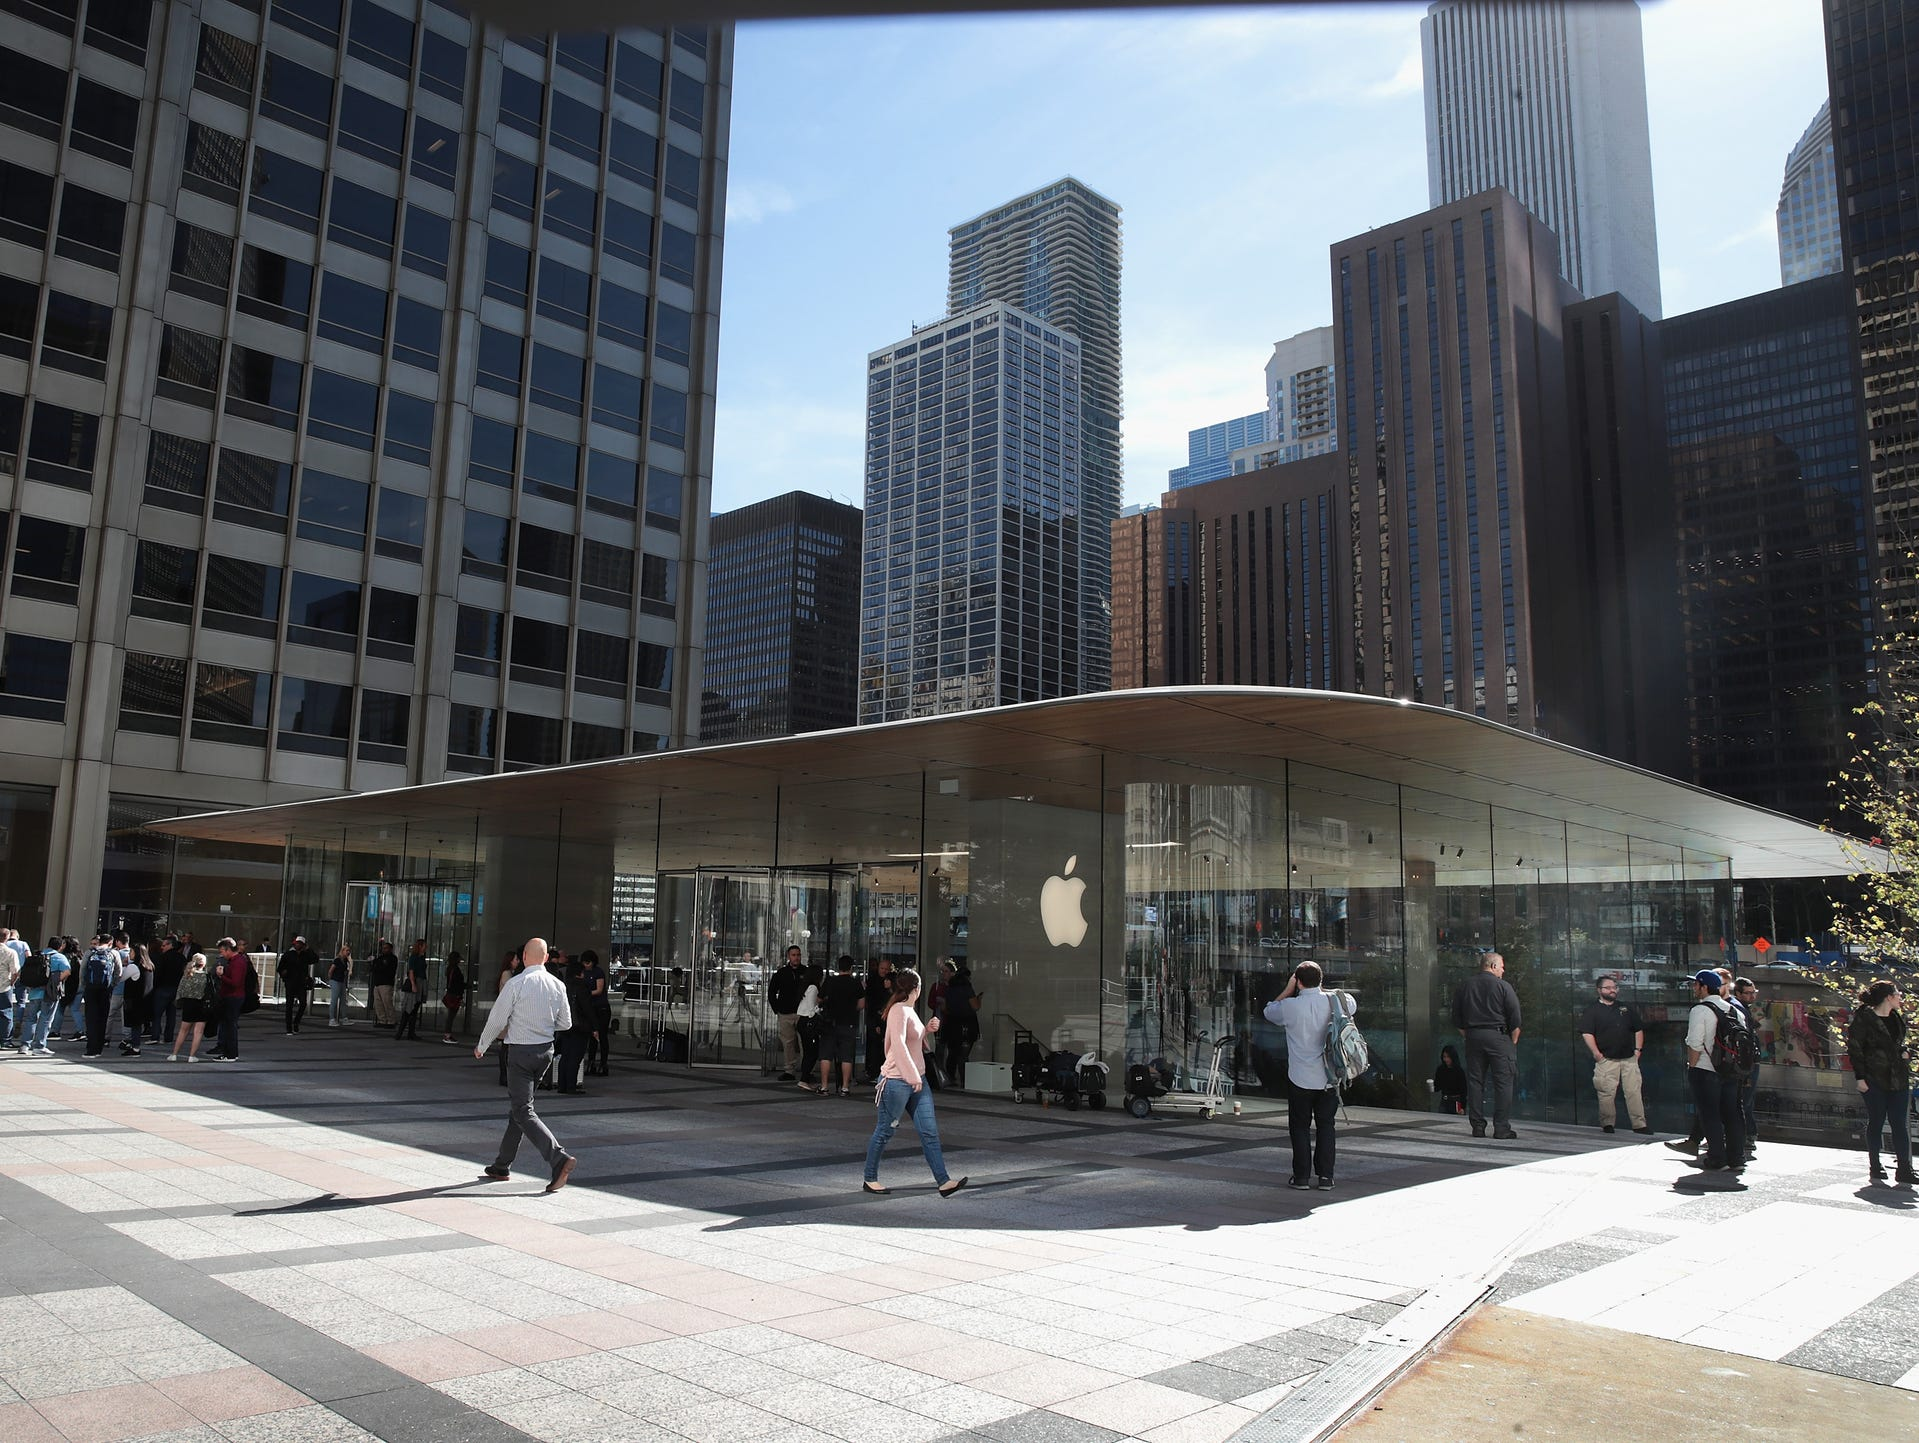 Apple retail store in Chicago full of glass and places to mingle